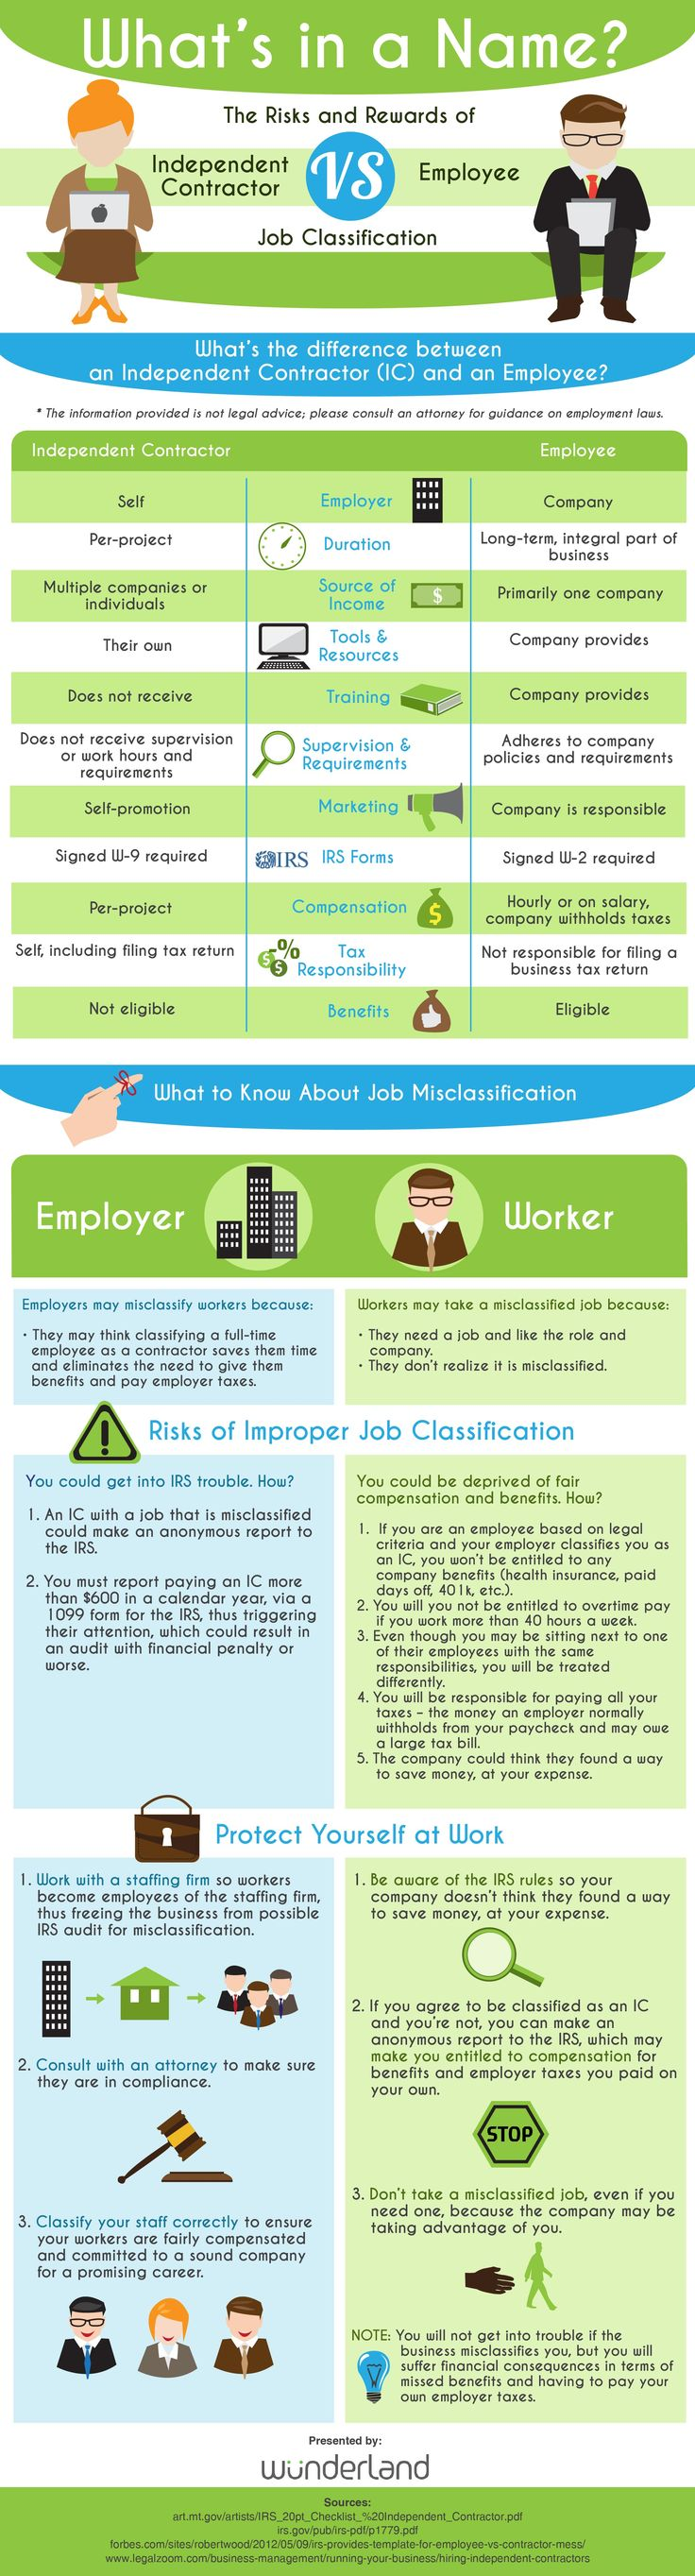 45 best employee or independent contractor images on pinterest